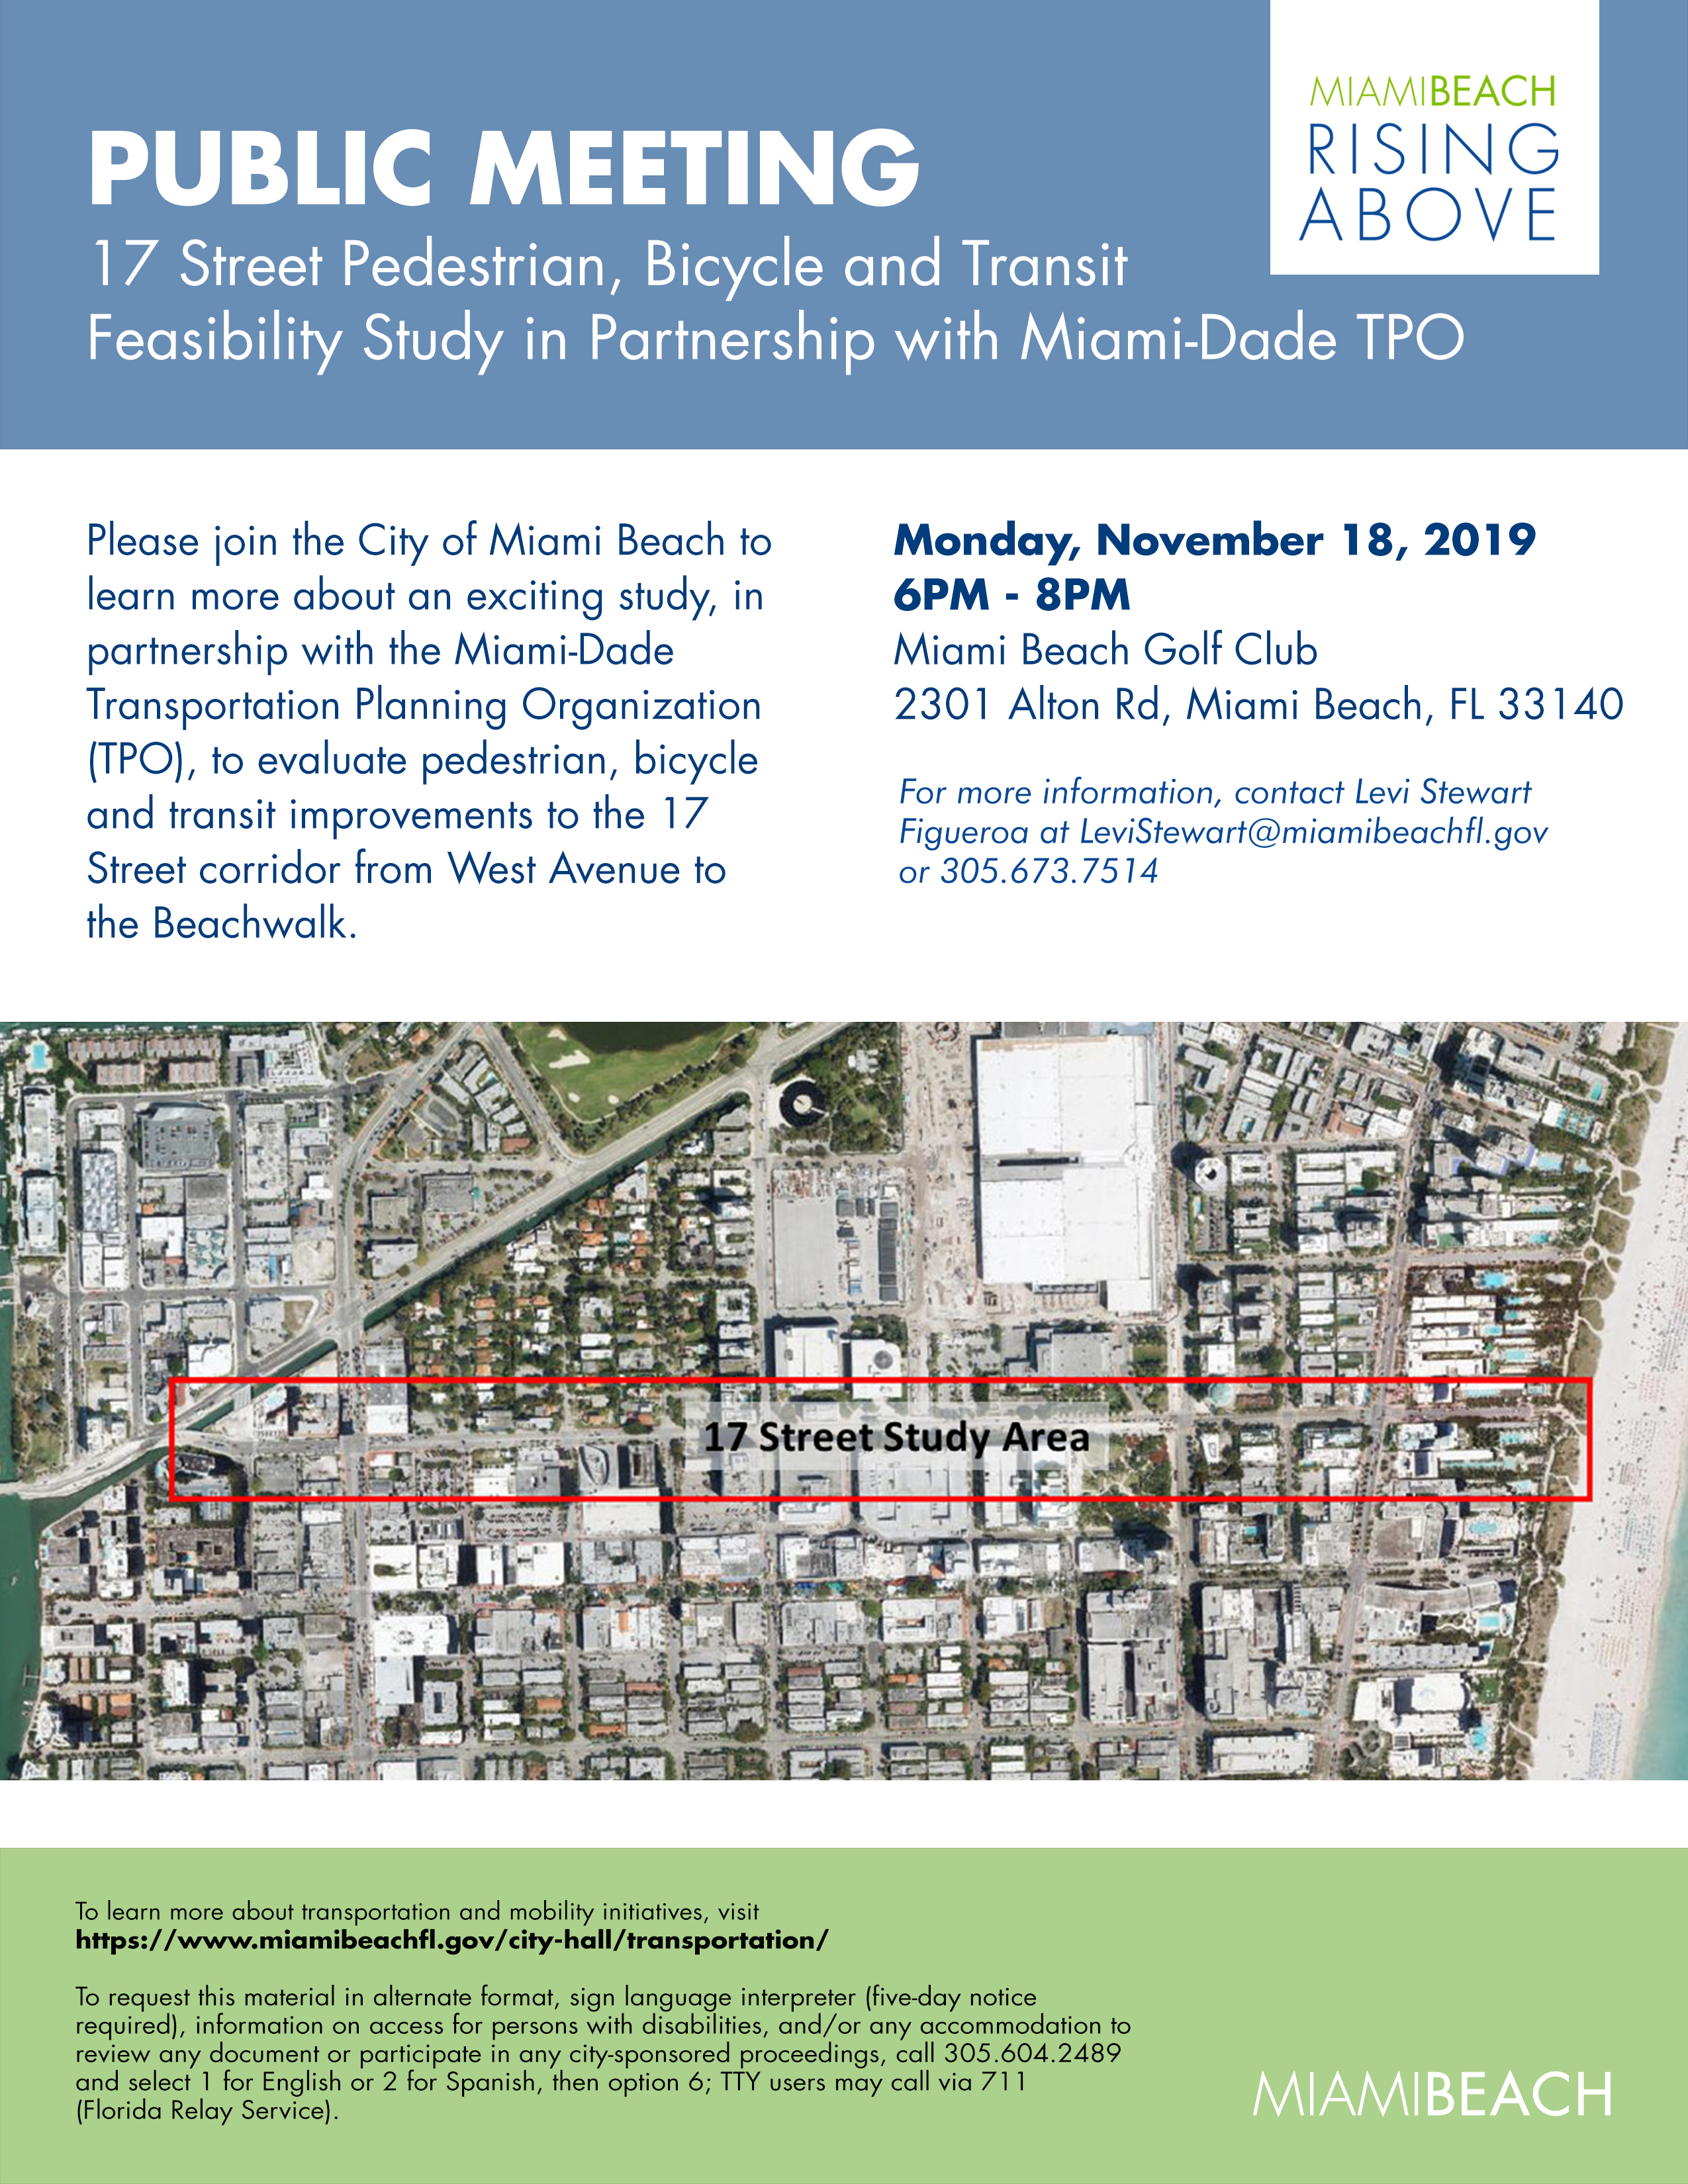 17 Street Pedestrian, Bicycle and Transit Feasibility Study in Partnership with Miami-Dade TPO